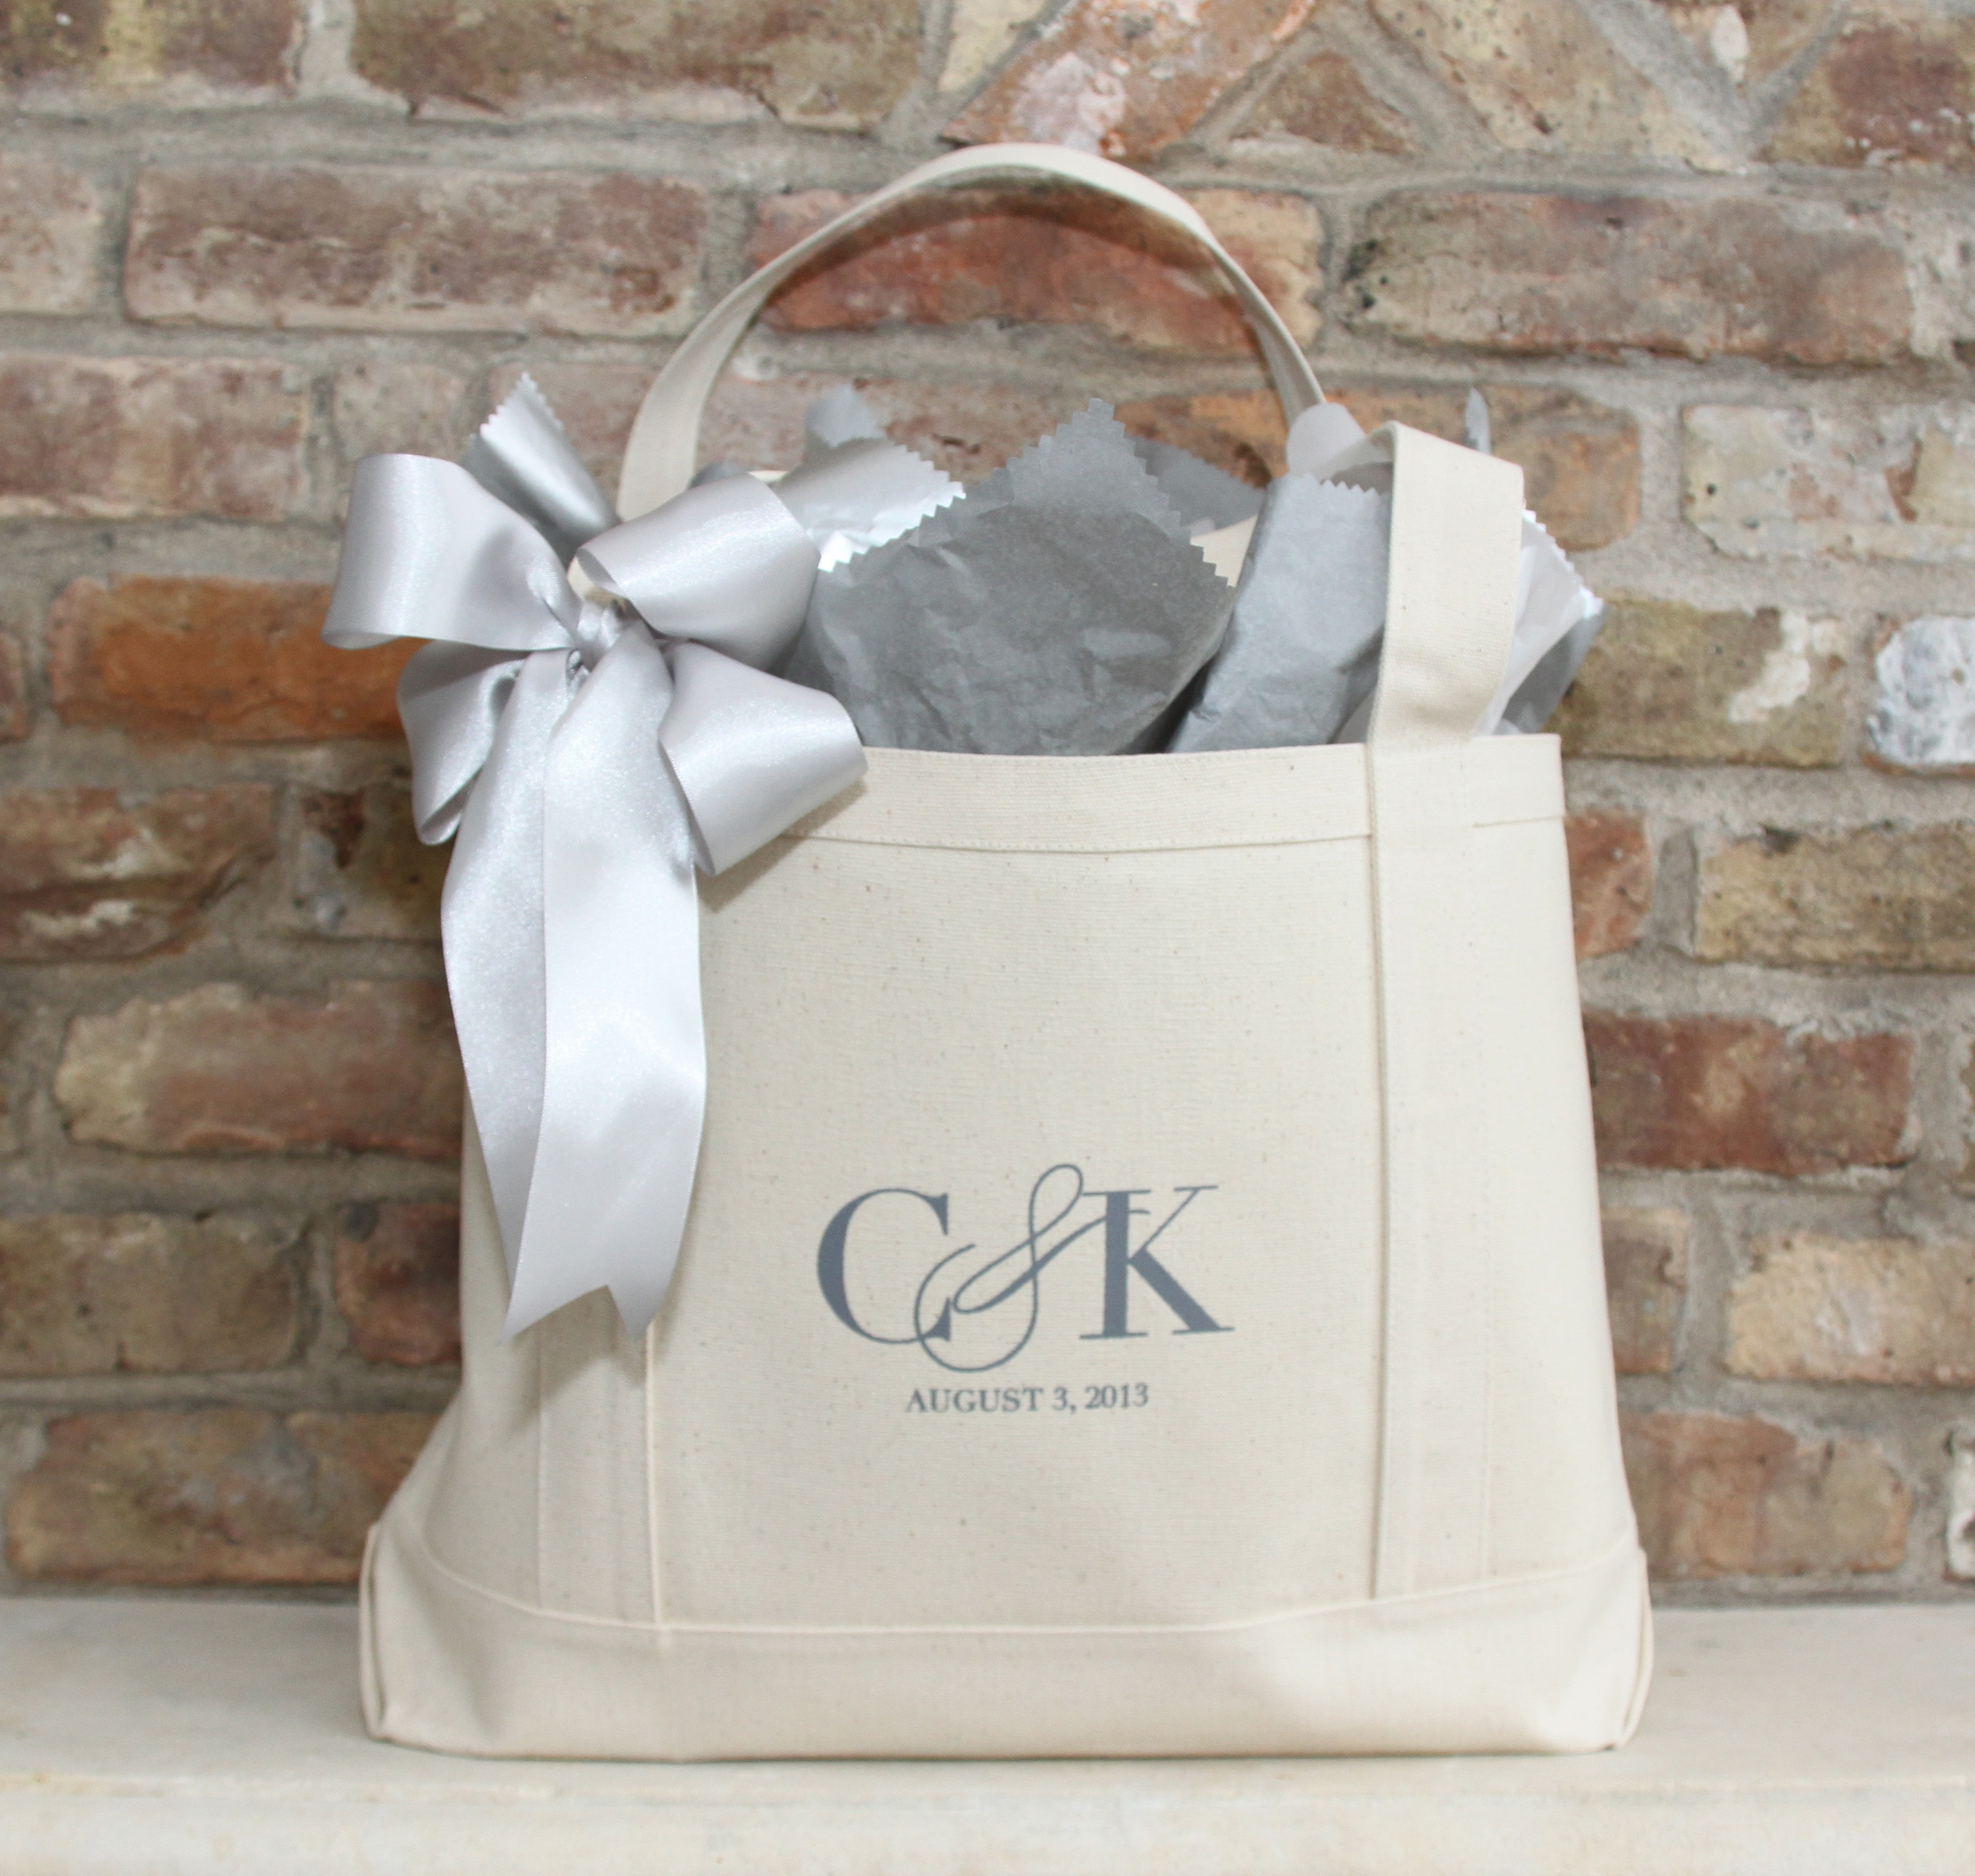 Ideas For Bridal Shower Gift Bags : Bridal Shower Gift Idea // Custom Tote Bags